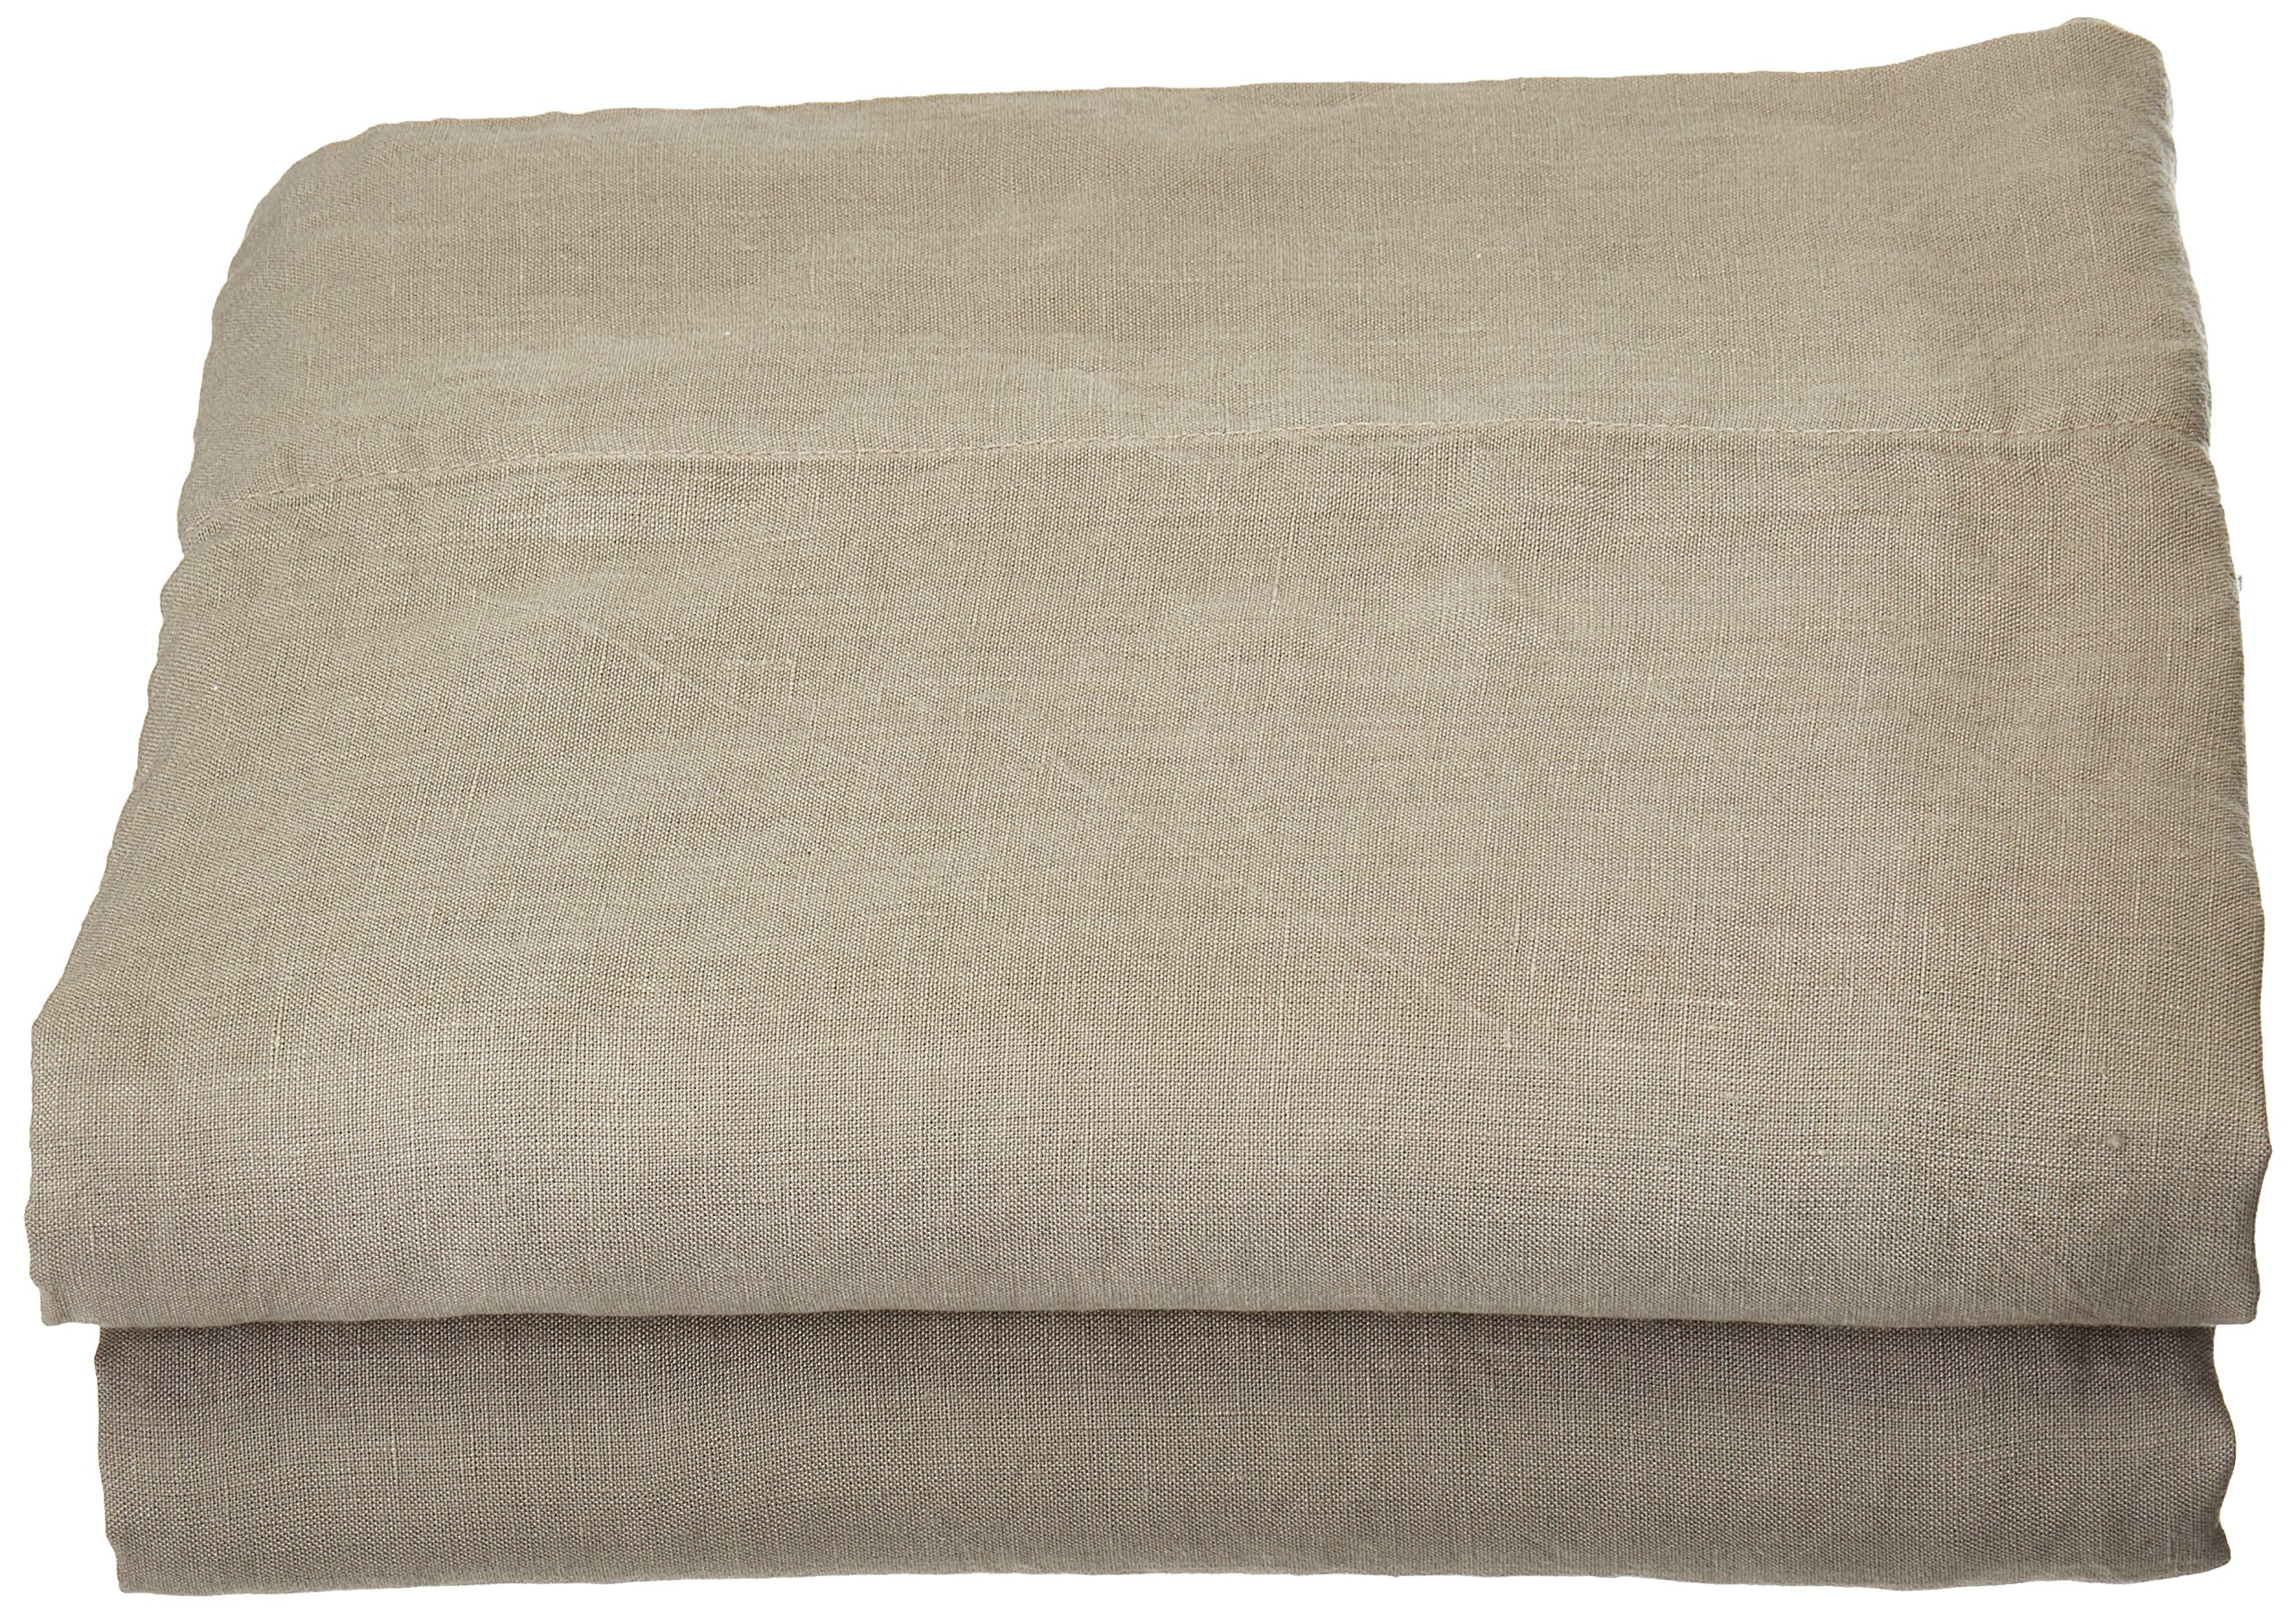 LinenMe Stone Washed Bed Linen Flat Sheet, 66 by 102-Inch, Taupe